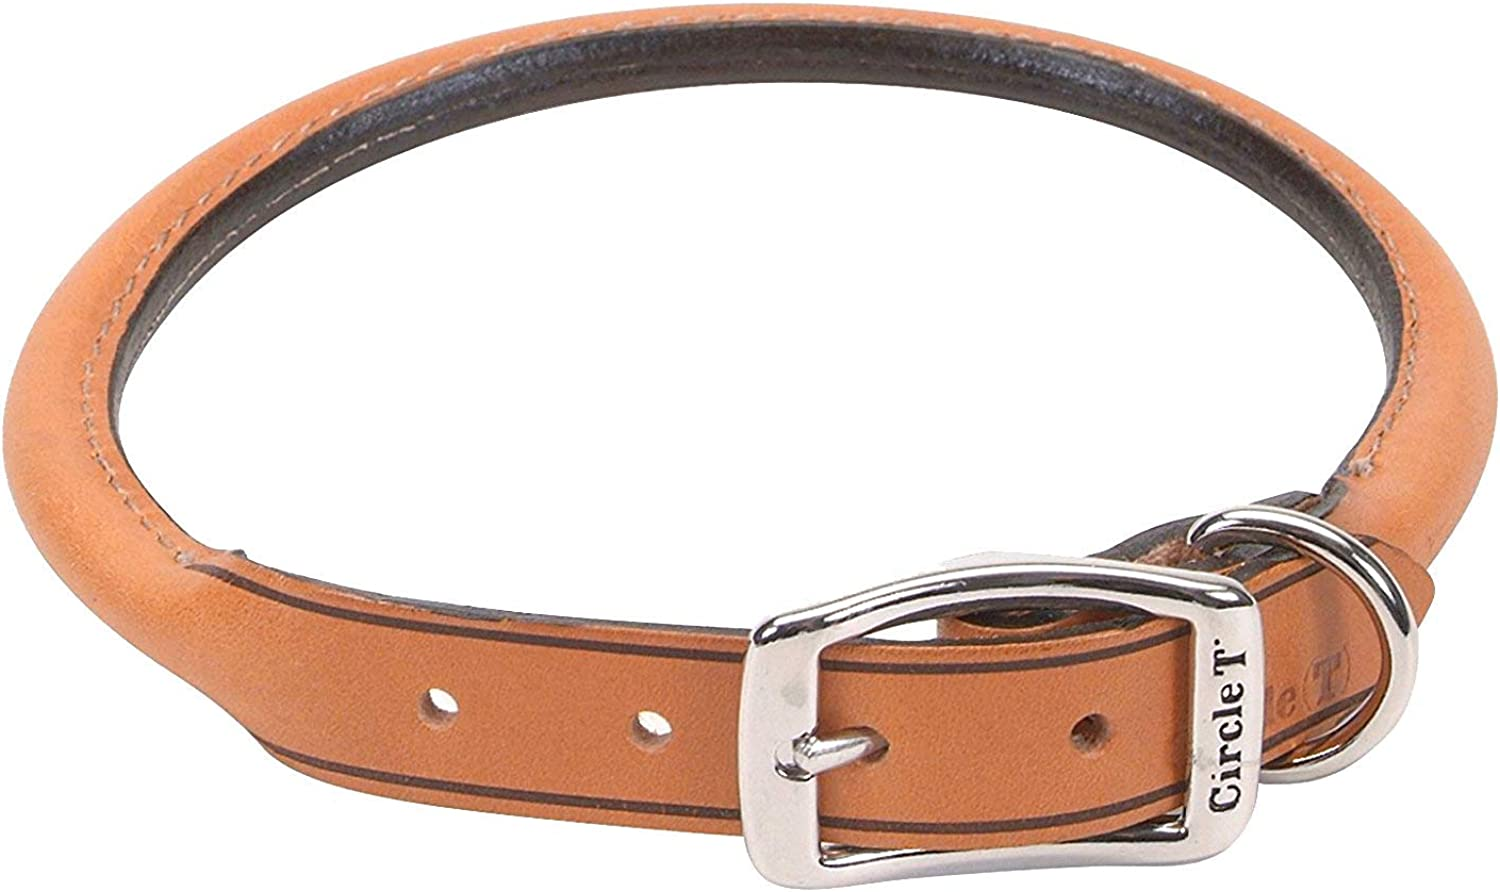 Coastal Pet Products DCP120620TAN Leather Circle T Oak Tanned Round Dog Collar, 20 by 3 4Inch, Tan